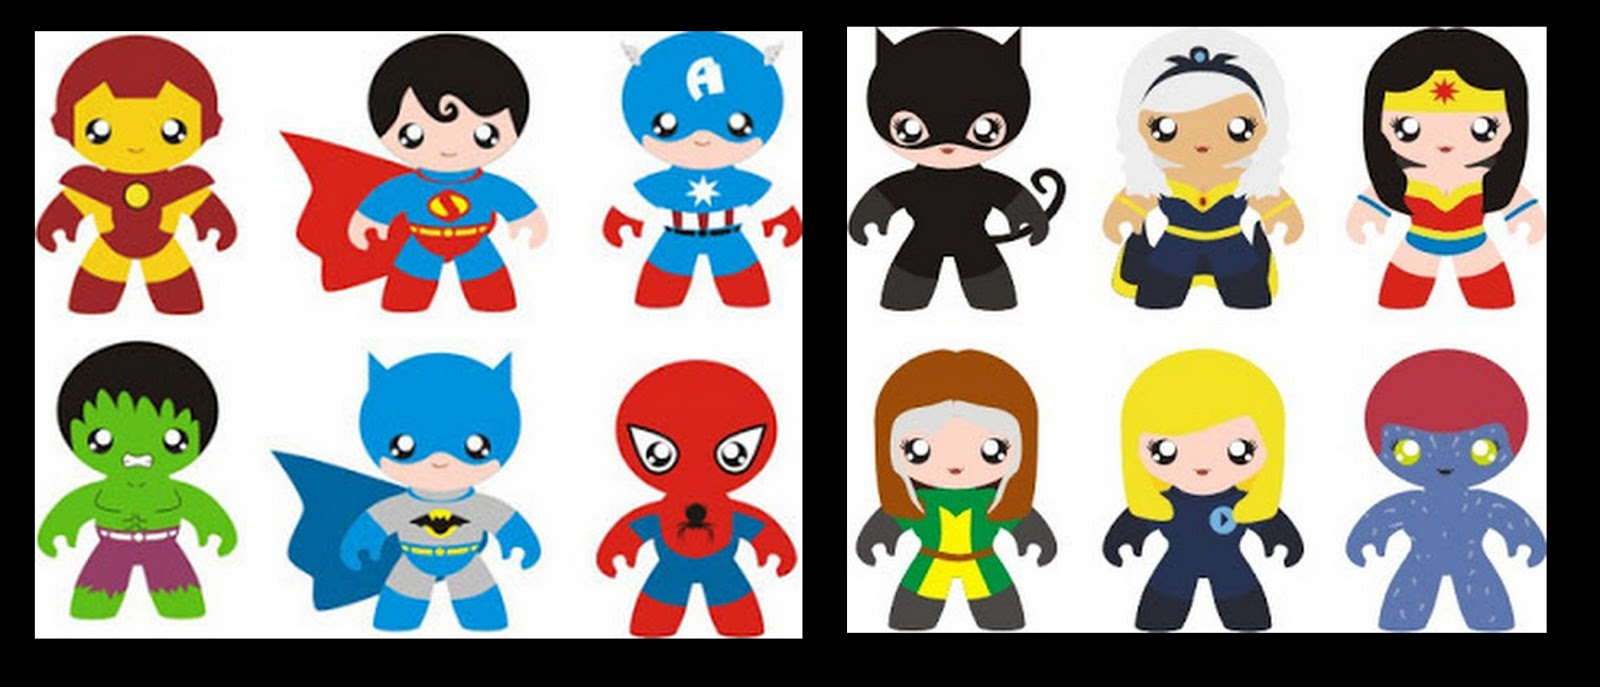 Lovely baby superheroes.